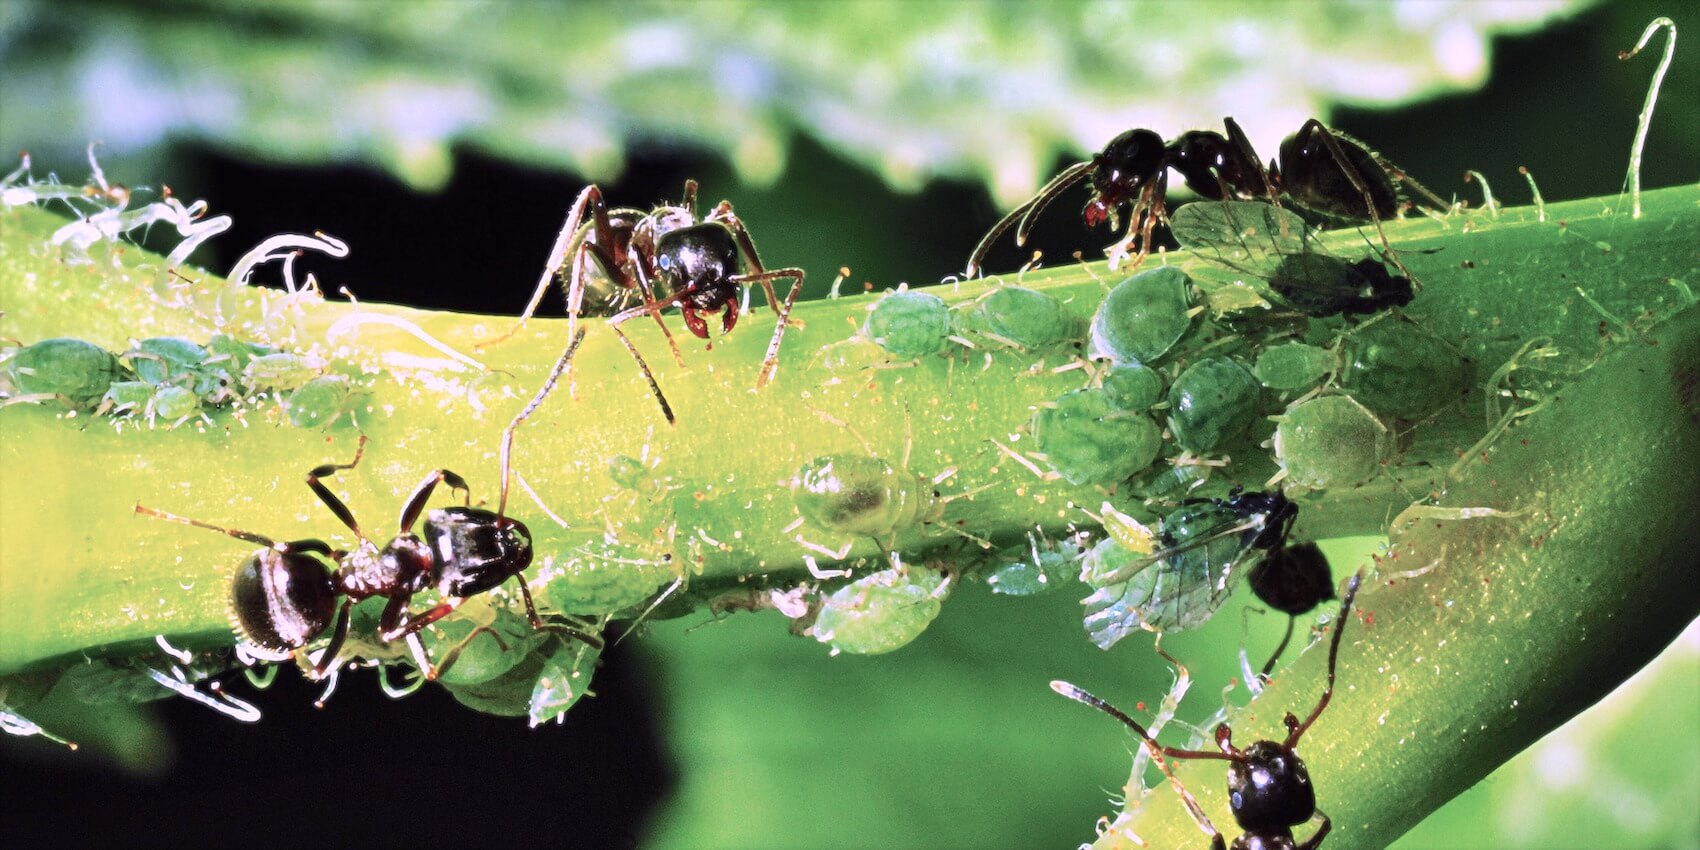 On how to get the ants out of the garden and whether it really needs to be done